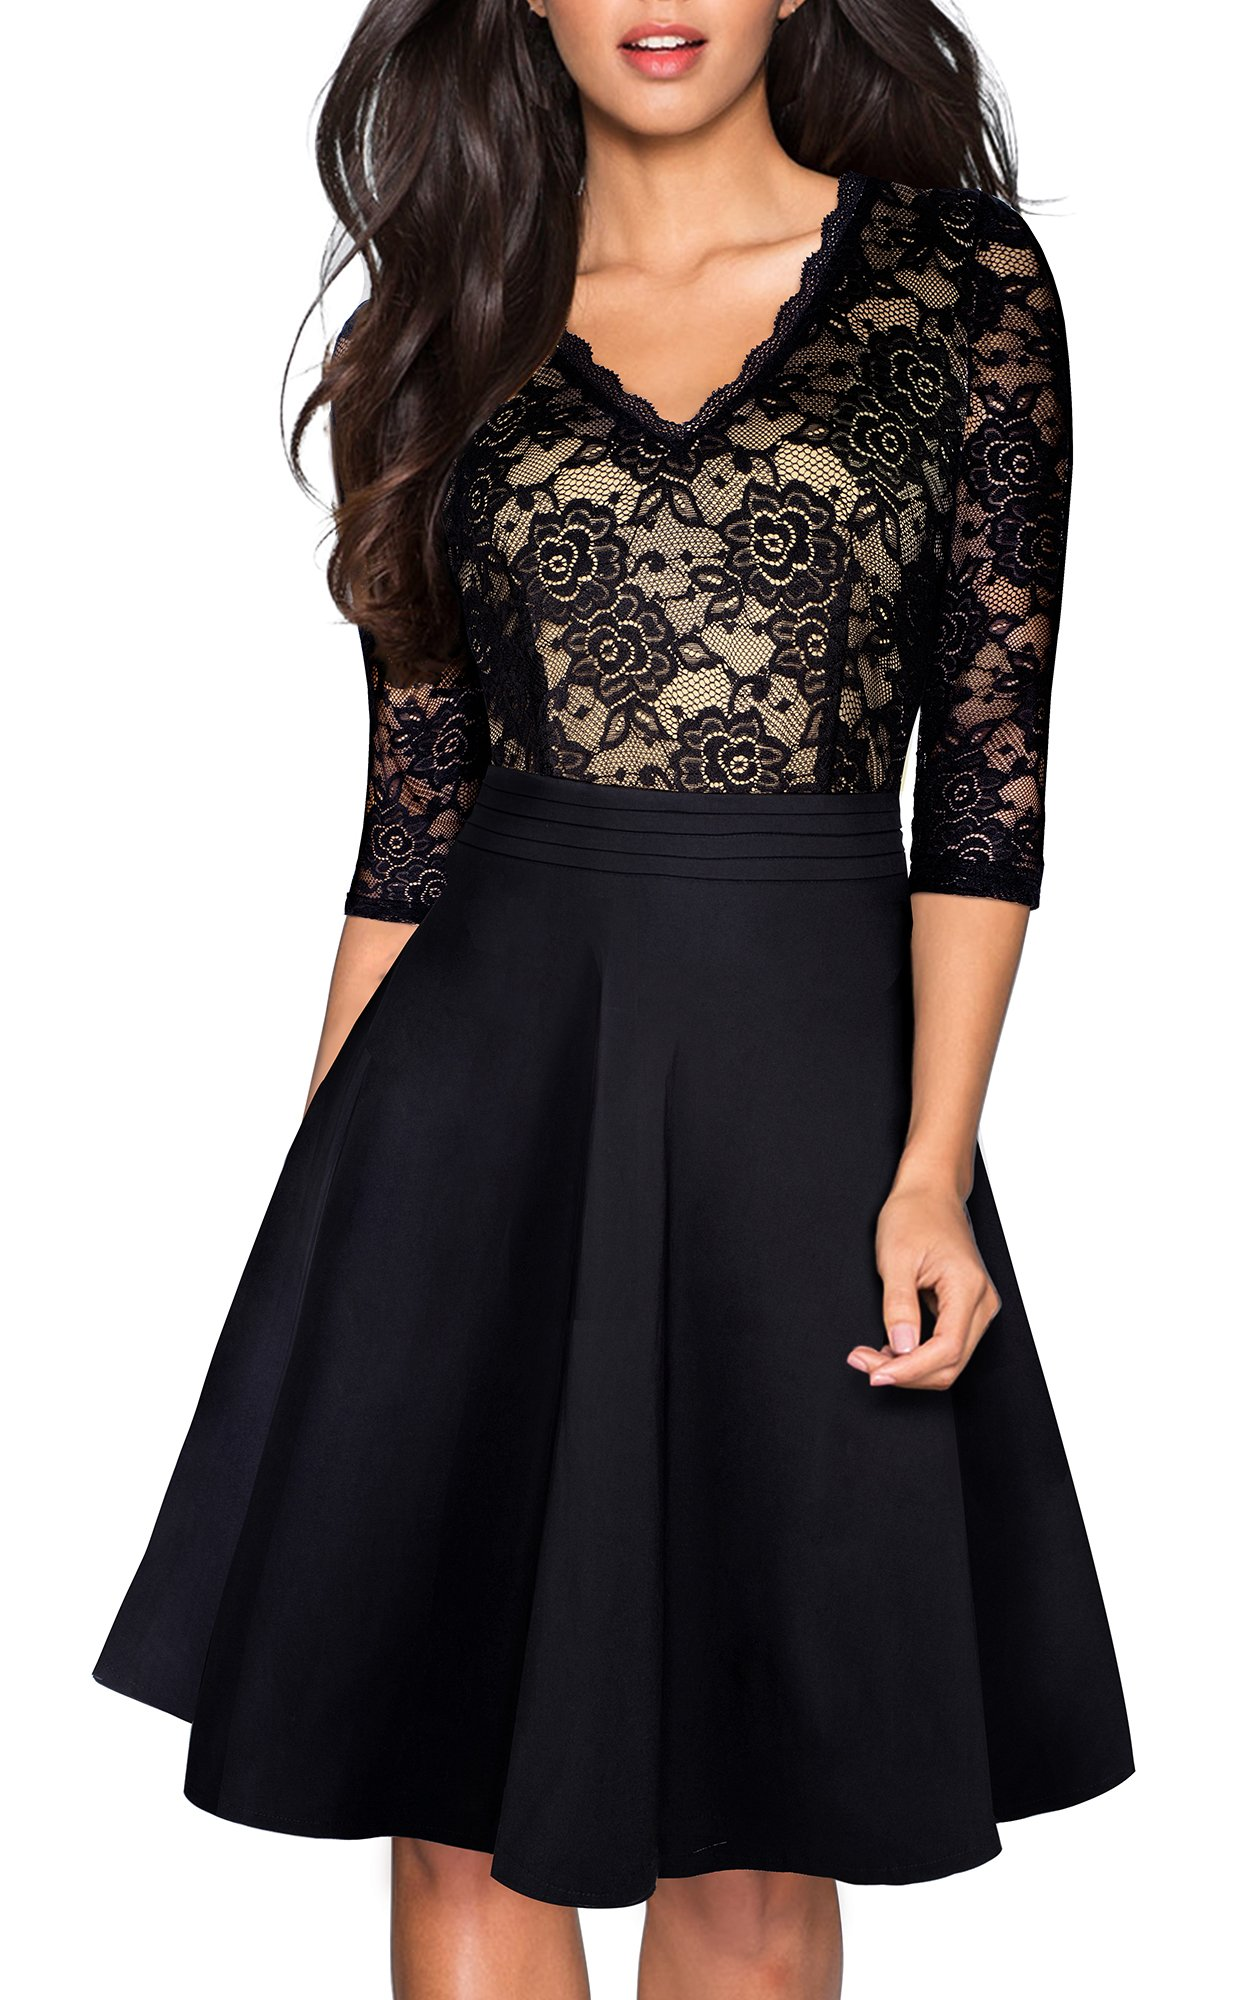 Party Dresses - Women's Chic V-Neck Lace Patchwork Flare Party Dress A062